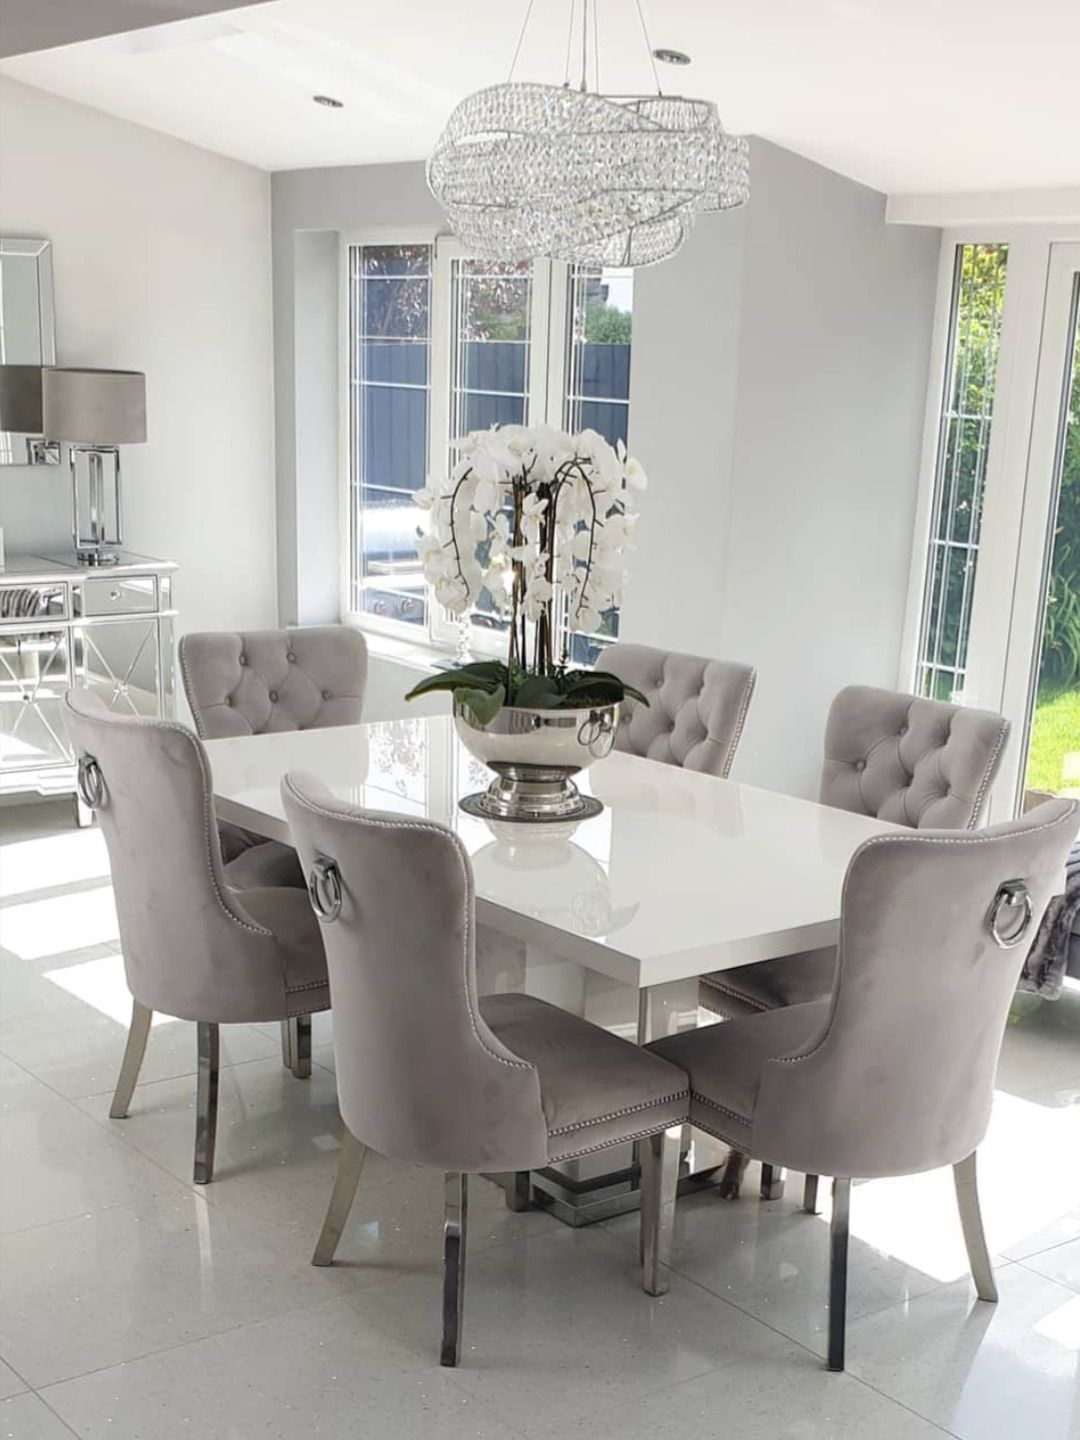 Brielle Tufted Armless Dining Chair Dinning Room Decor Decor Home Living Room Luxury Dining Room